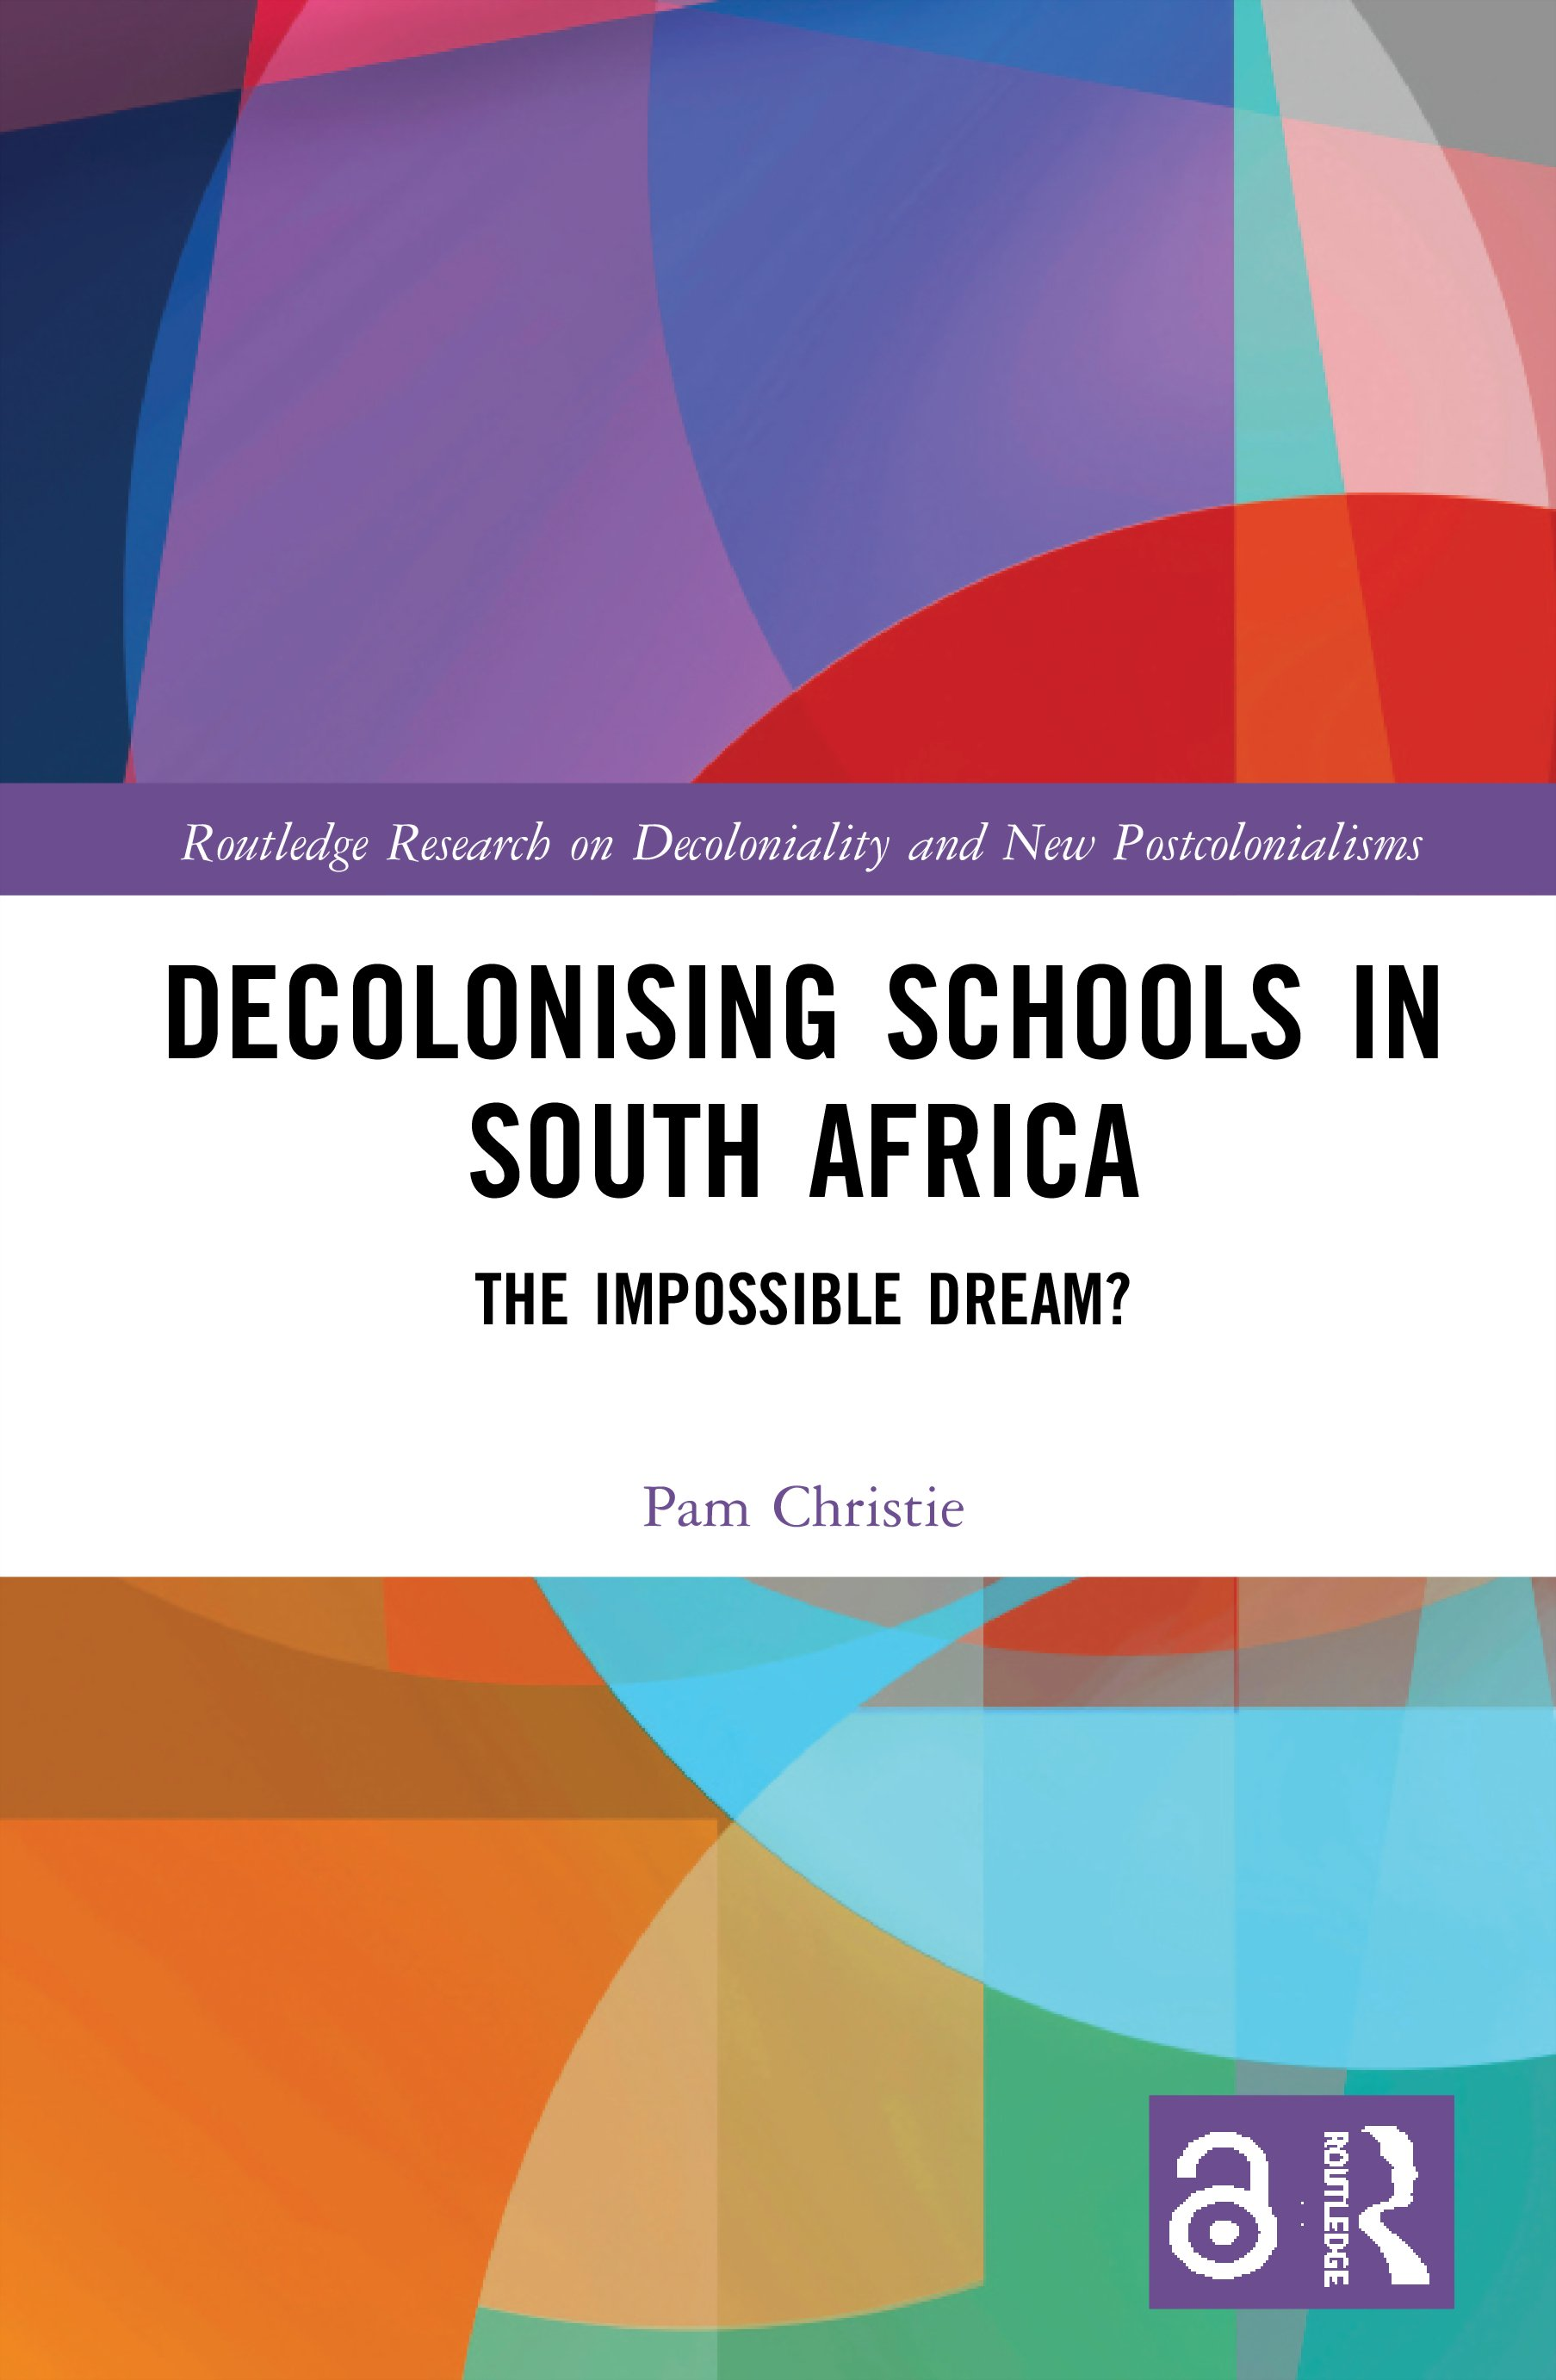 Decolonising Schools in South Africa: The Impossible Dream? book cover